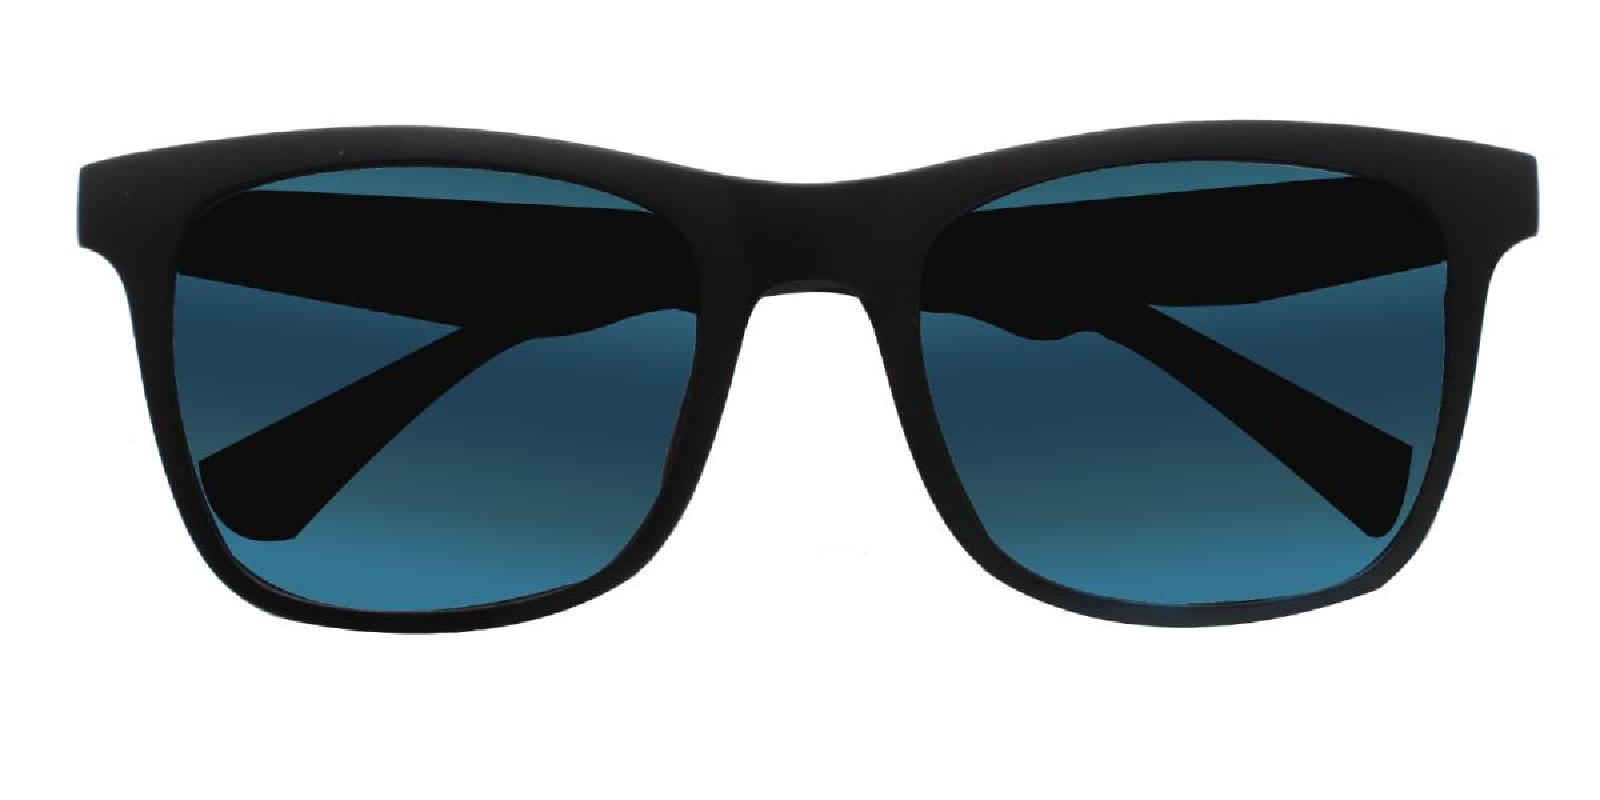 Hanowe-Black-Square / Cat-TR-Sunglasses-additional2